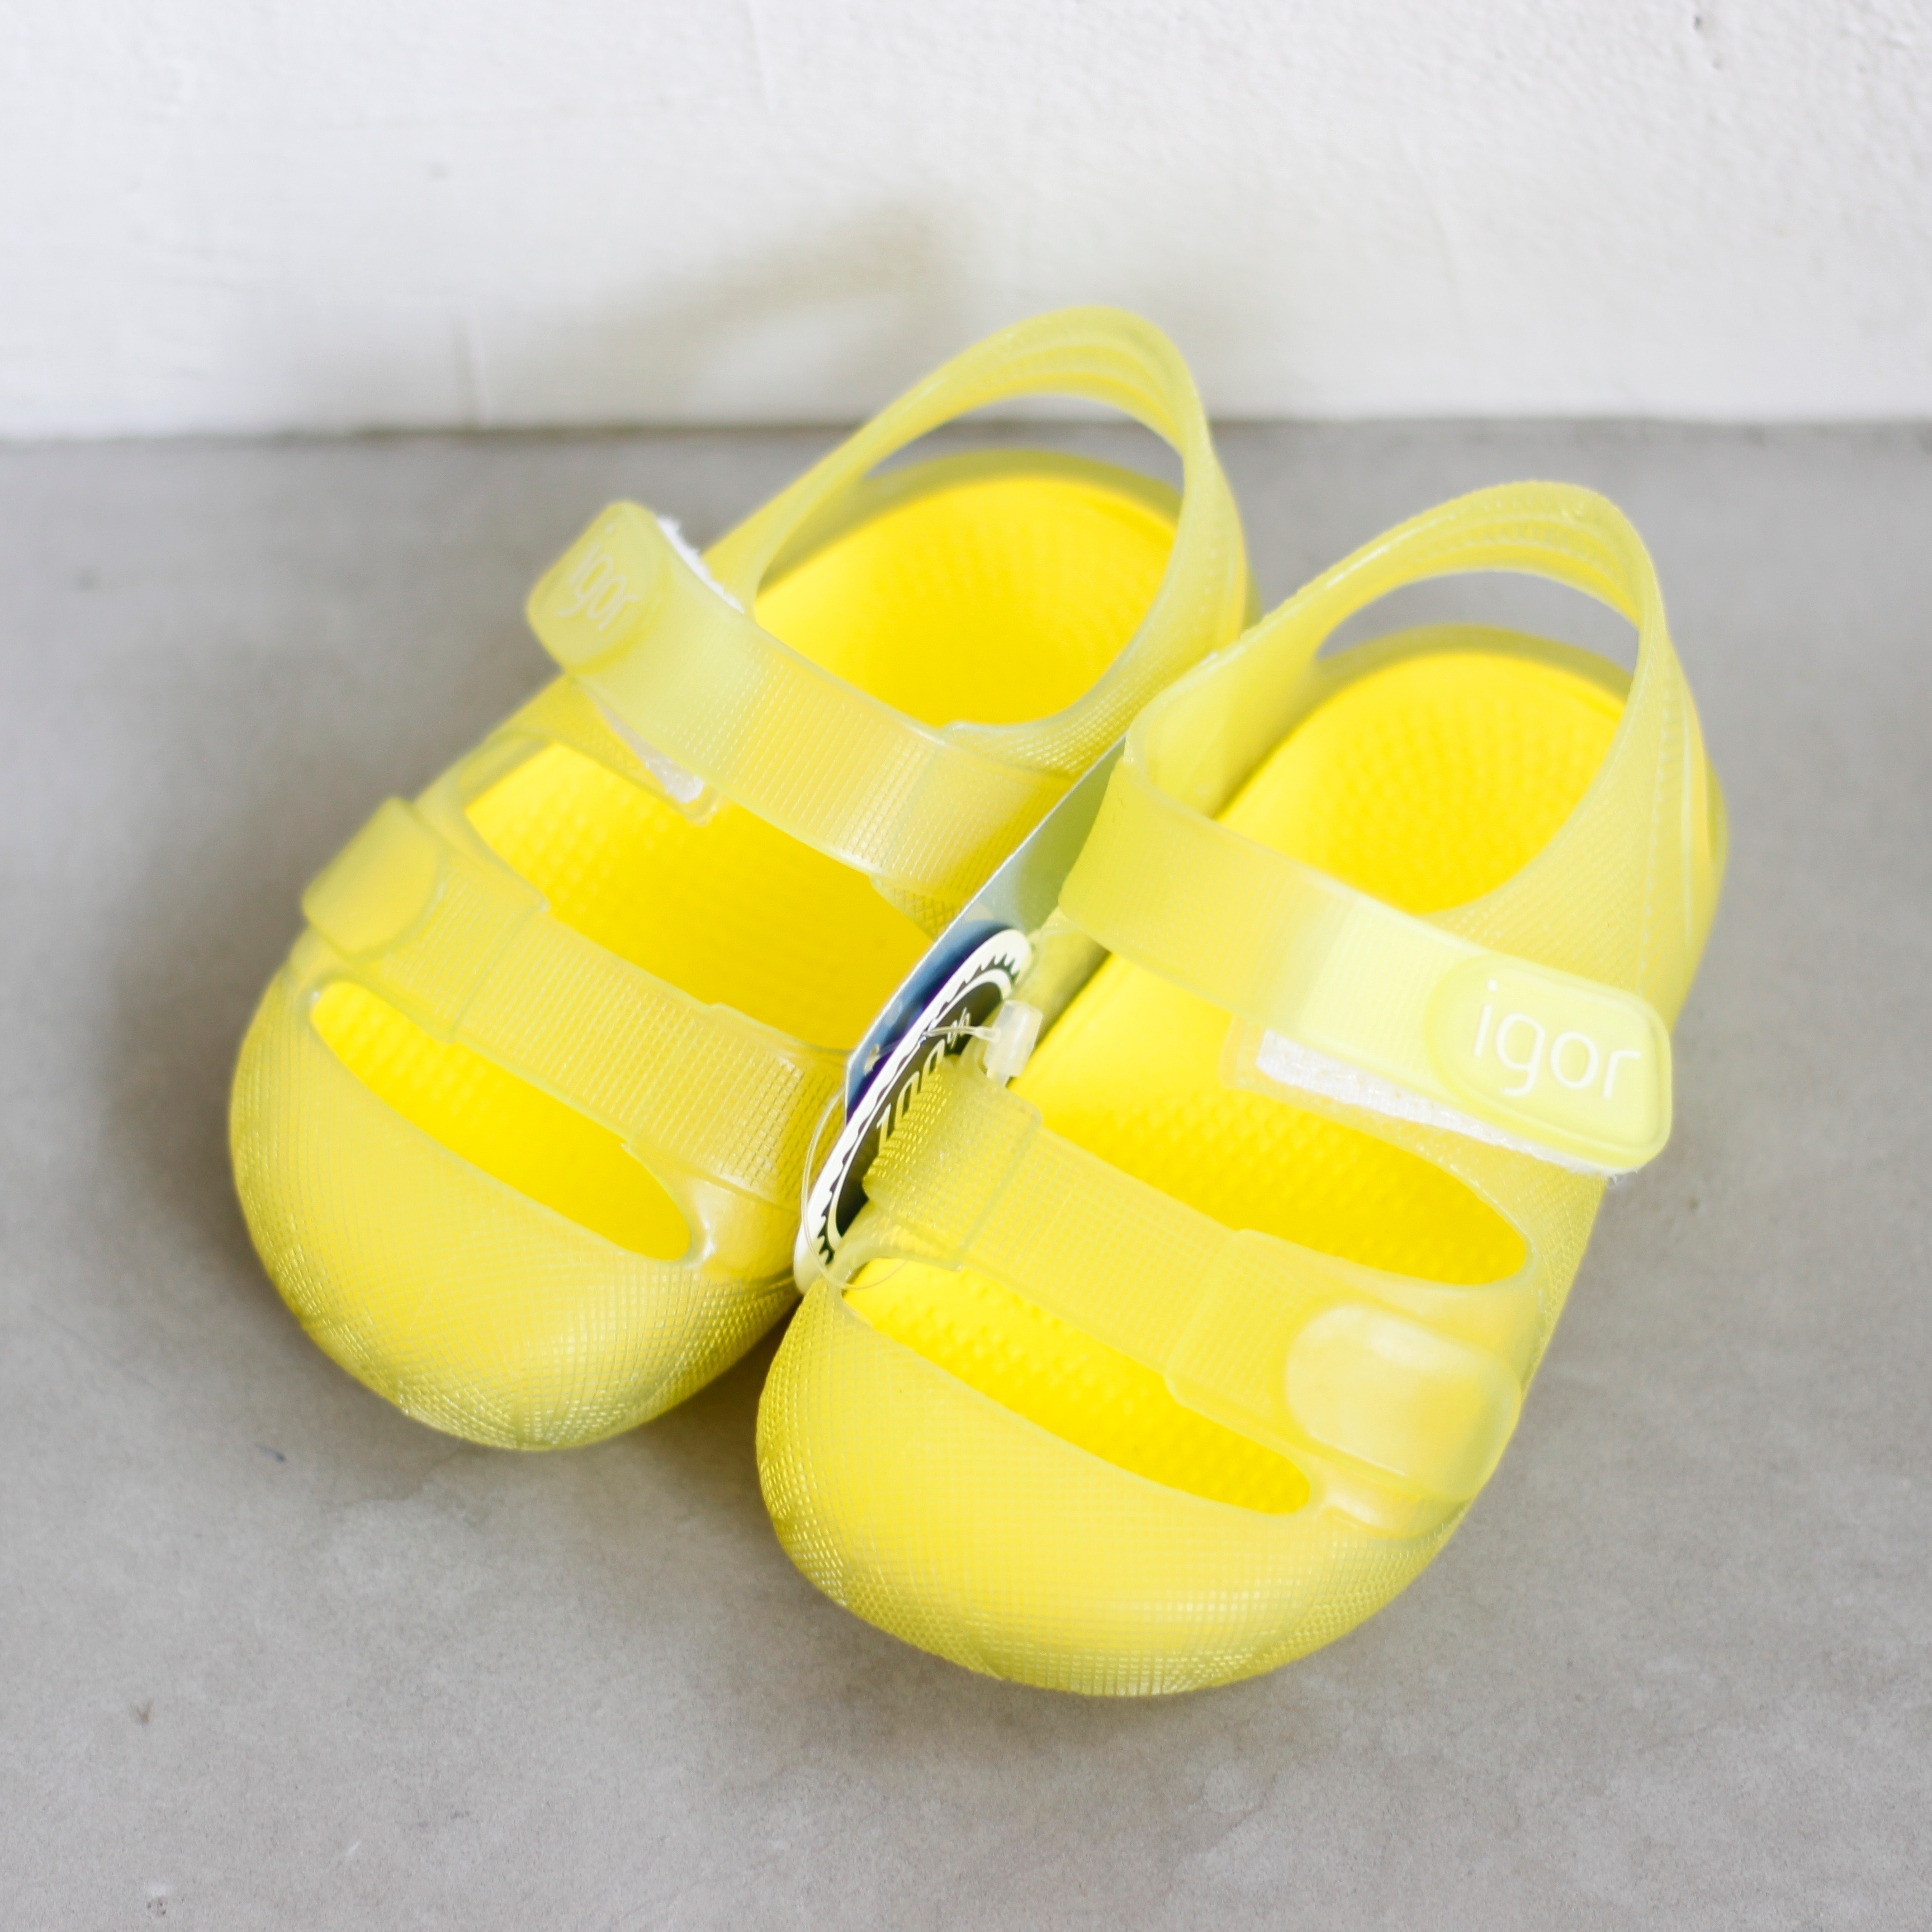 《igor》BONDI / Amarillo(yellow) / 12〜16cm